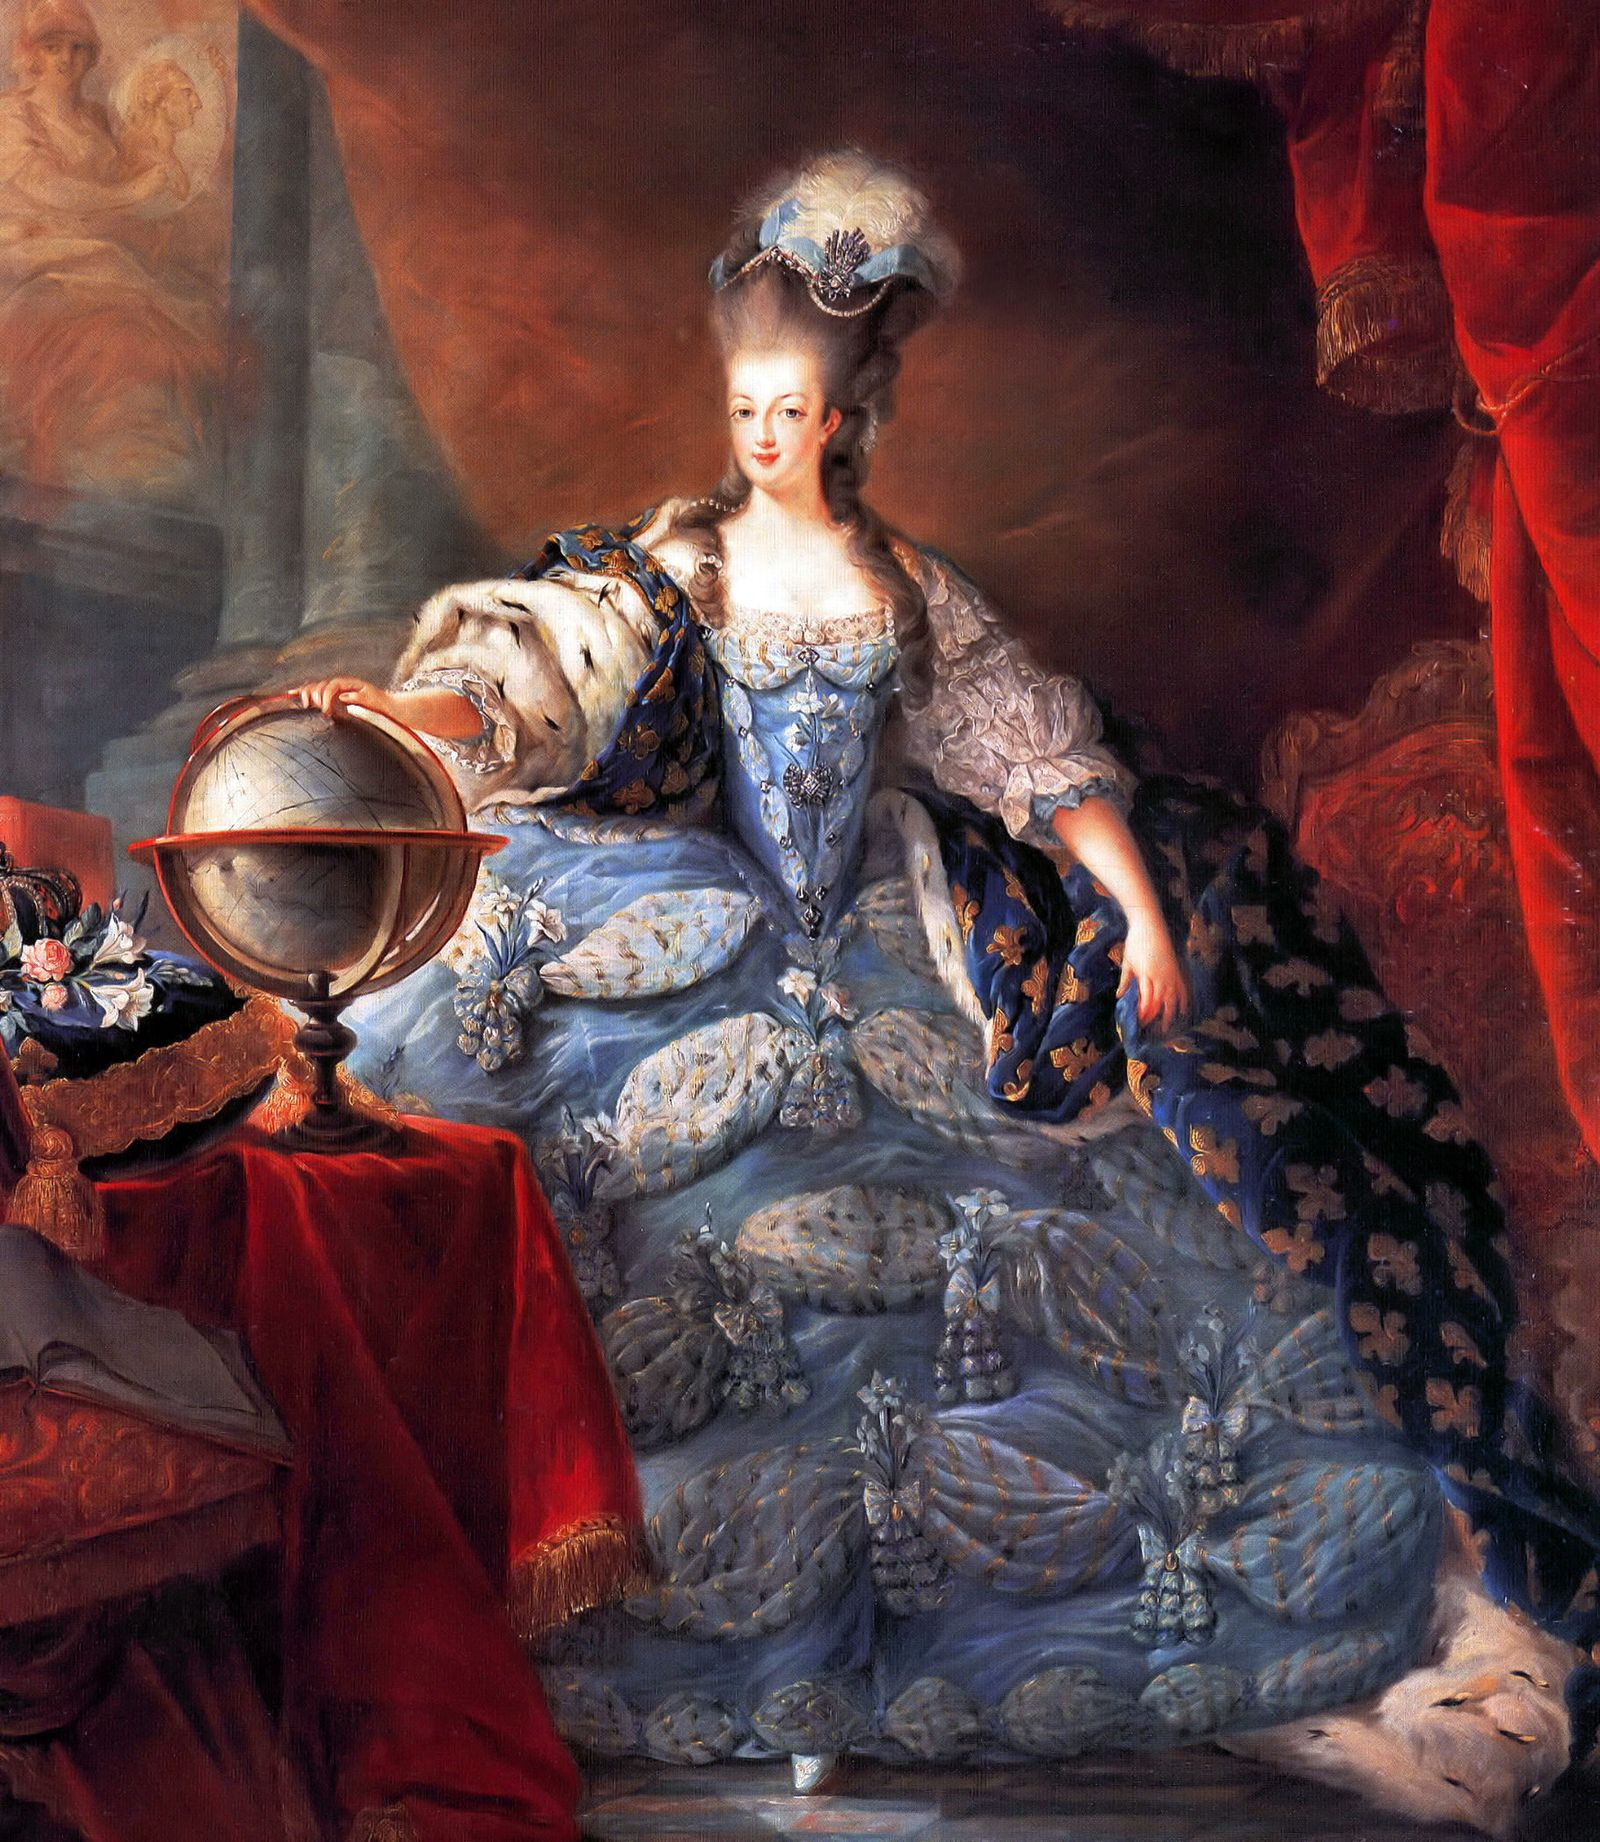 Marie Antoinette, Queen Consort of France (1755 - 1793). Marie Antoinette, Queen of France, in coronation robes by Jean-Baptiste Gautier Dagoty, 1775